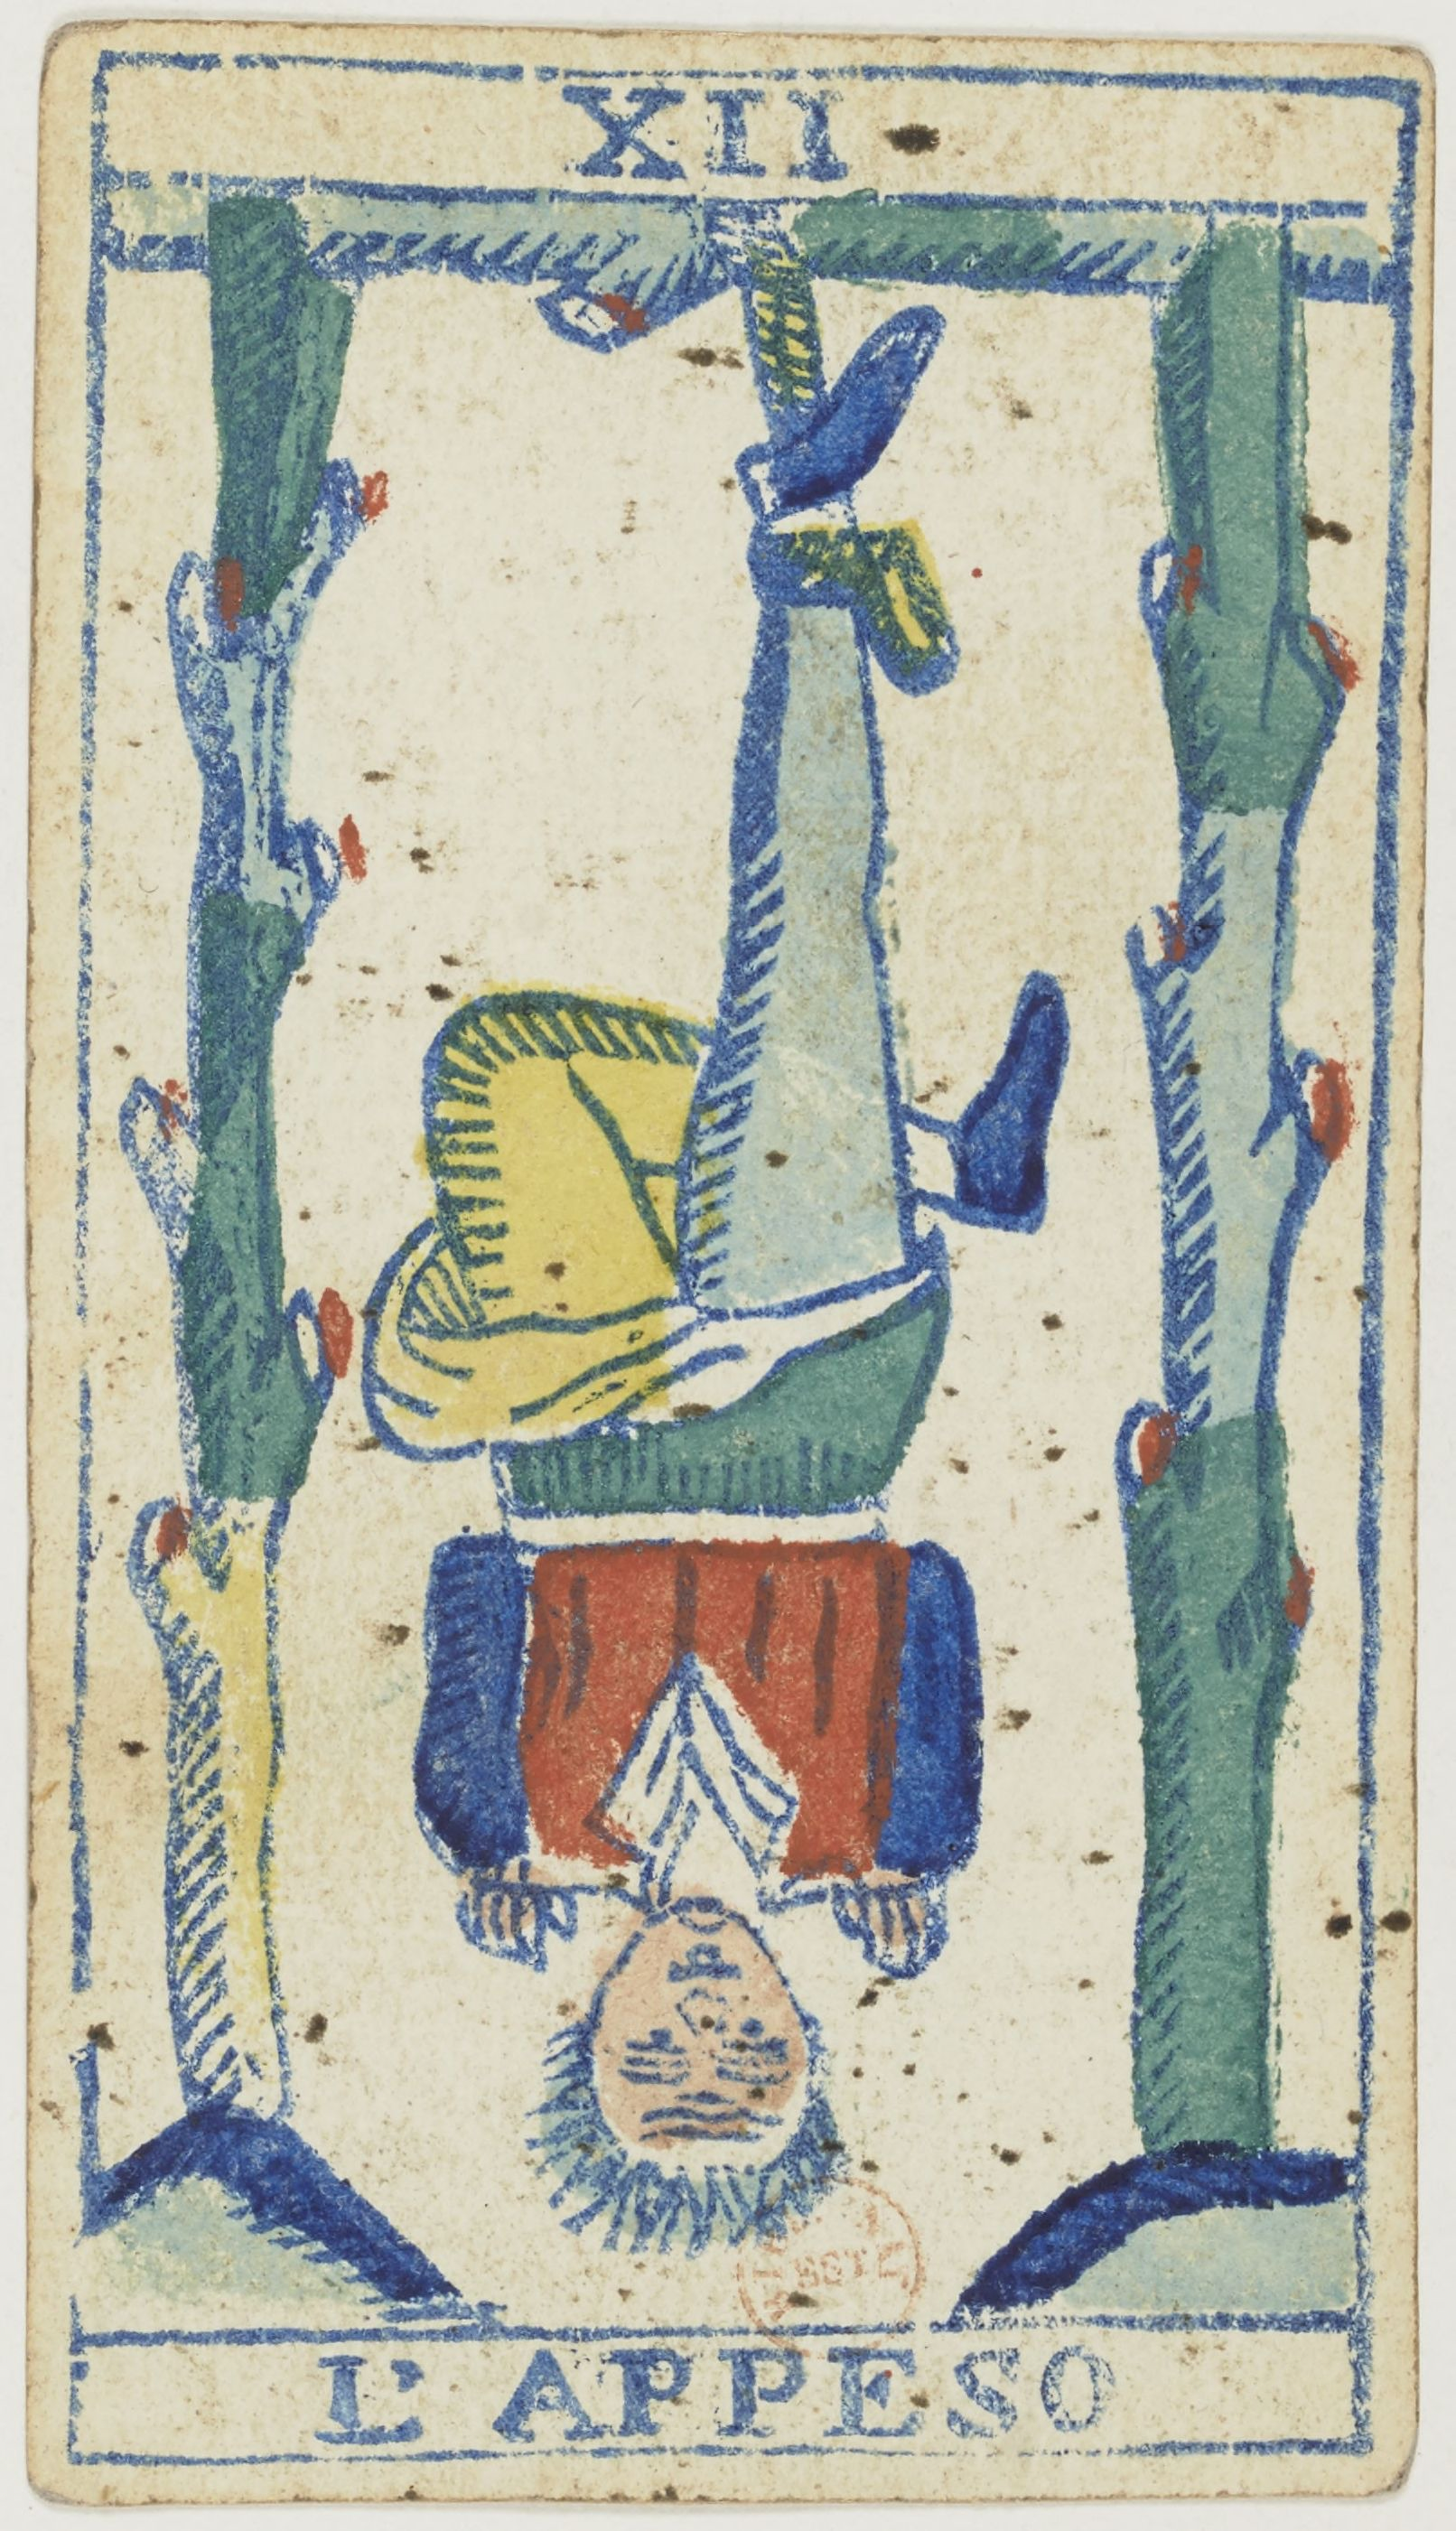 The Hanged Man in a Piedmontese Tarot deck, by F. F. Solesio (editor) https://commons.wikimedia.org/wiki/File:Piedmontese_tarot_deck_-_Solesio_-_1865_-_Trump_-_12_-_The_Hanged_Man.jpg?uselang=en-gb